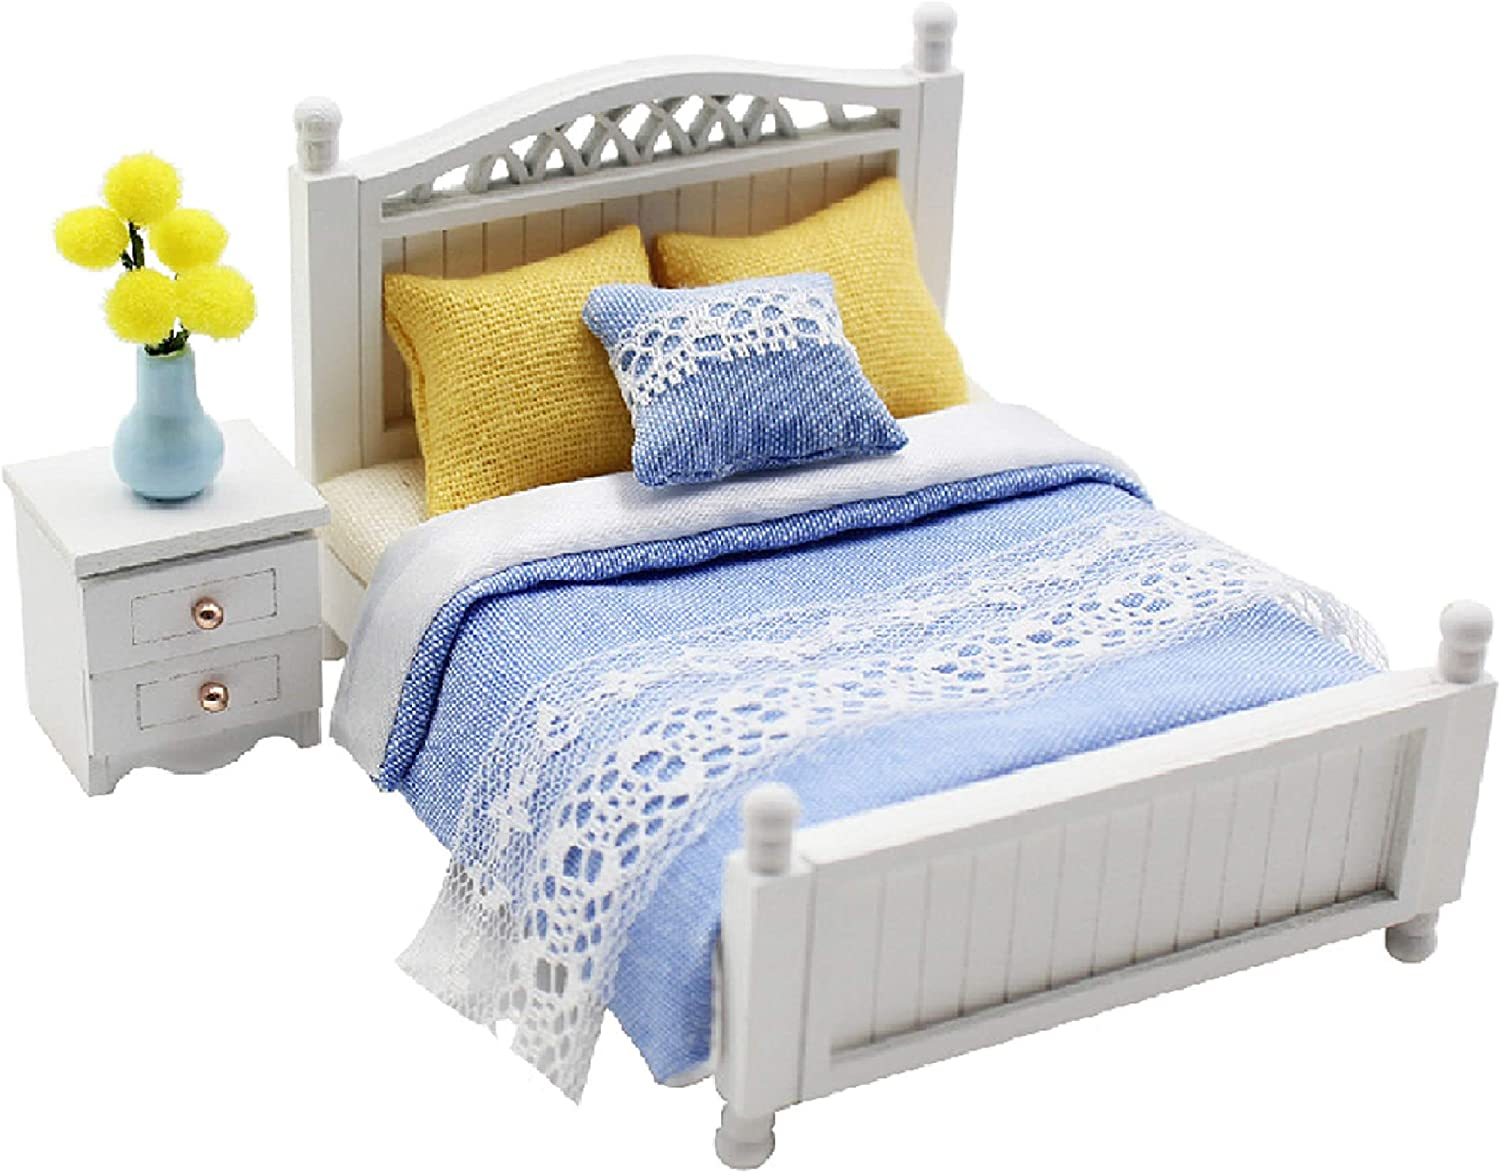 Cool Beans Boutique 1:18 Miniature Dollhouse Furniture DIY Kit – Blue Double Bed & Night Stand (Assembly Required) (Double Bed & Nightstand, Blue)